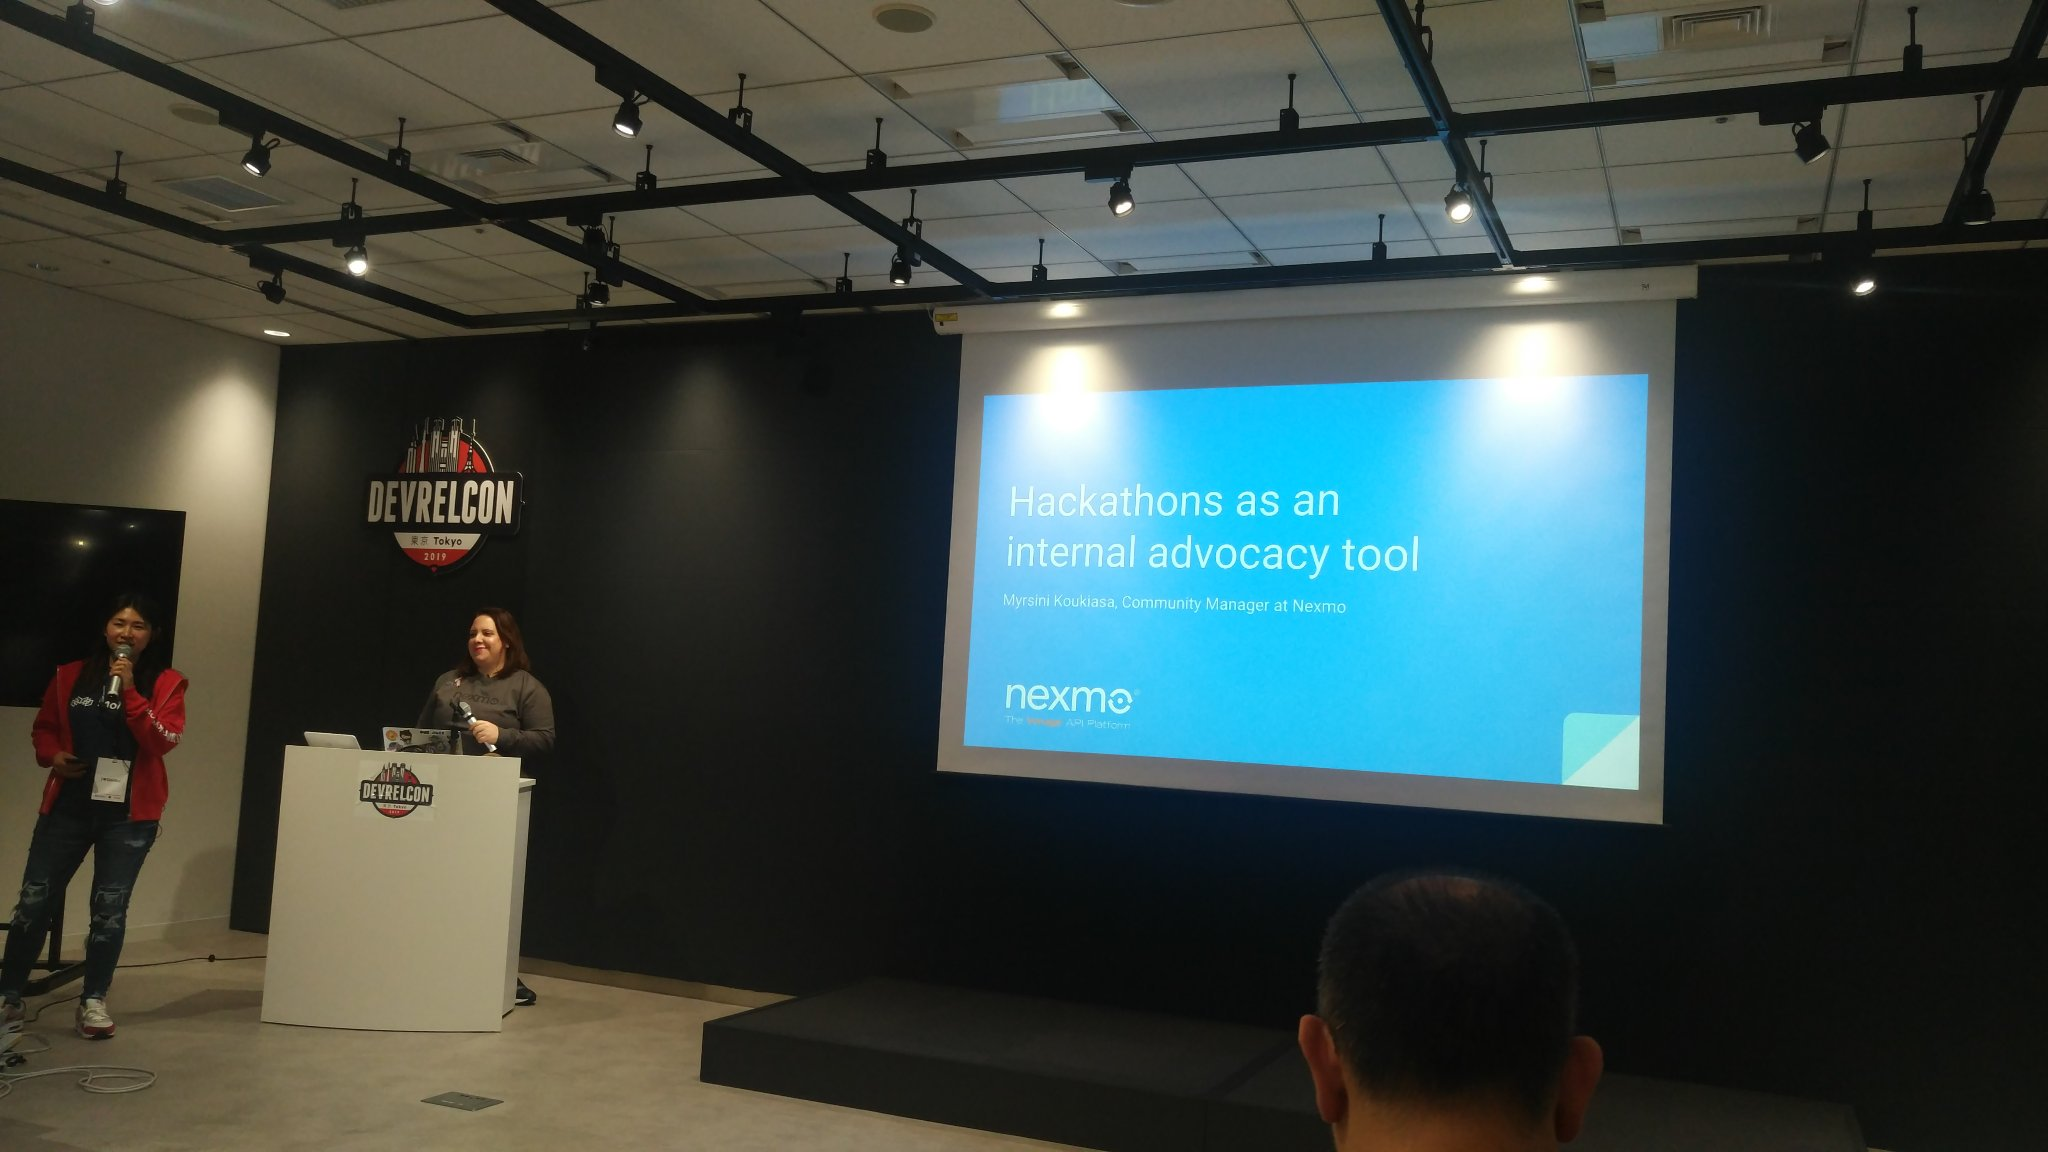 Myrsini on Hackathons as an internal advocacy tool